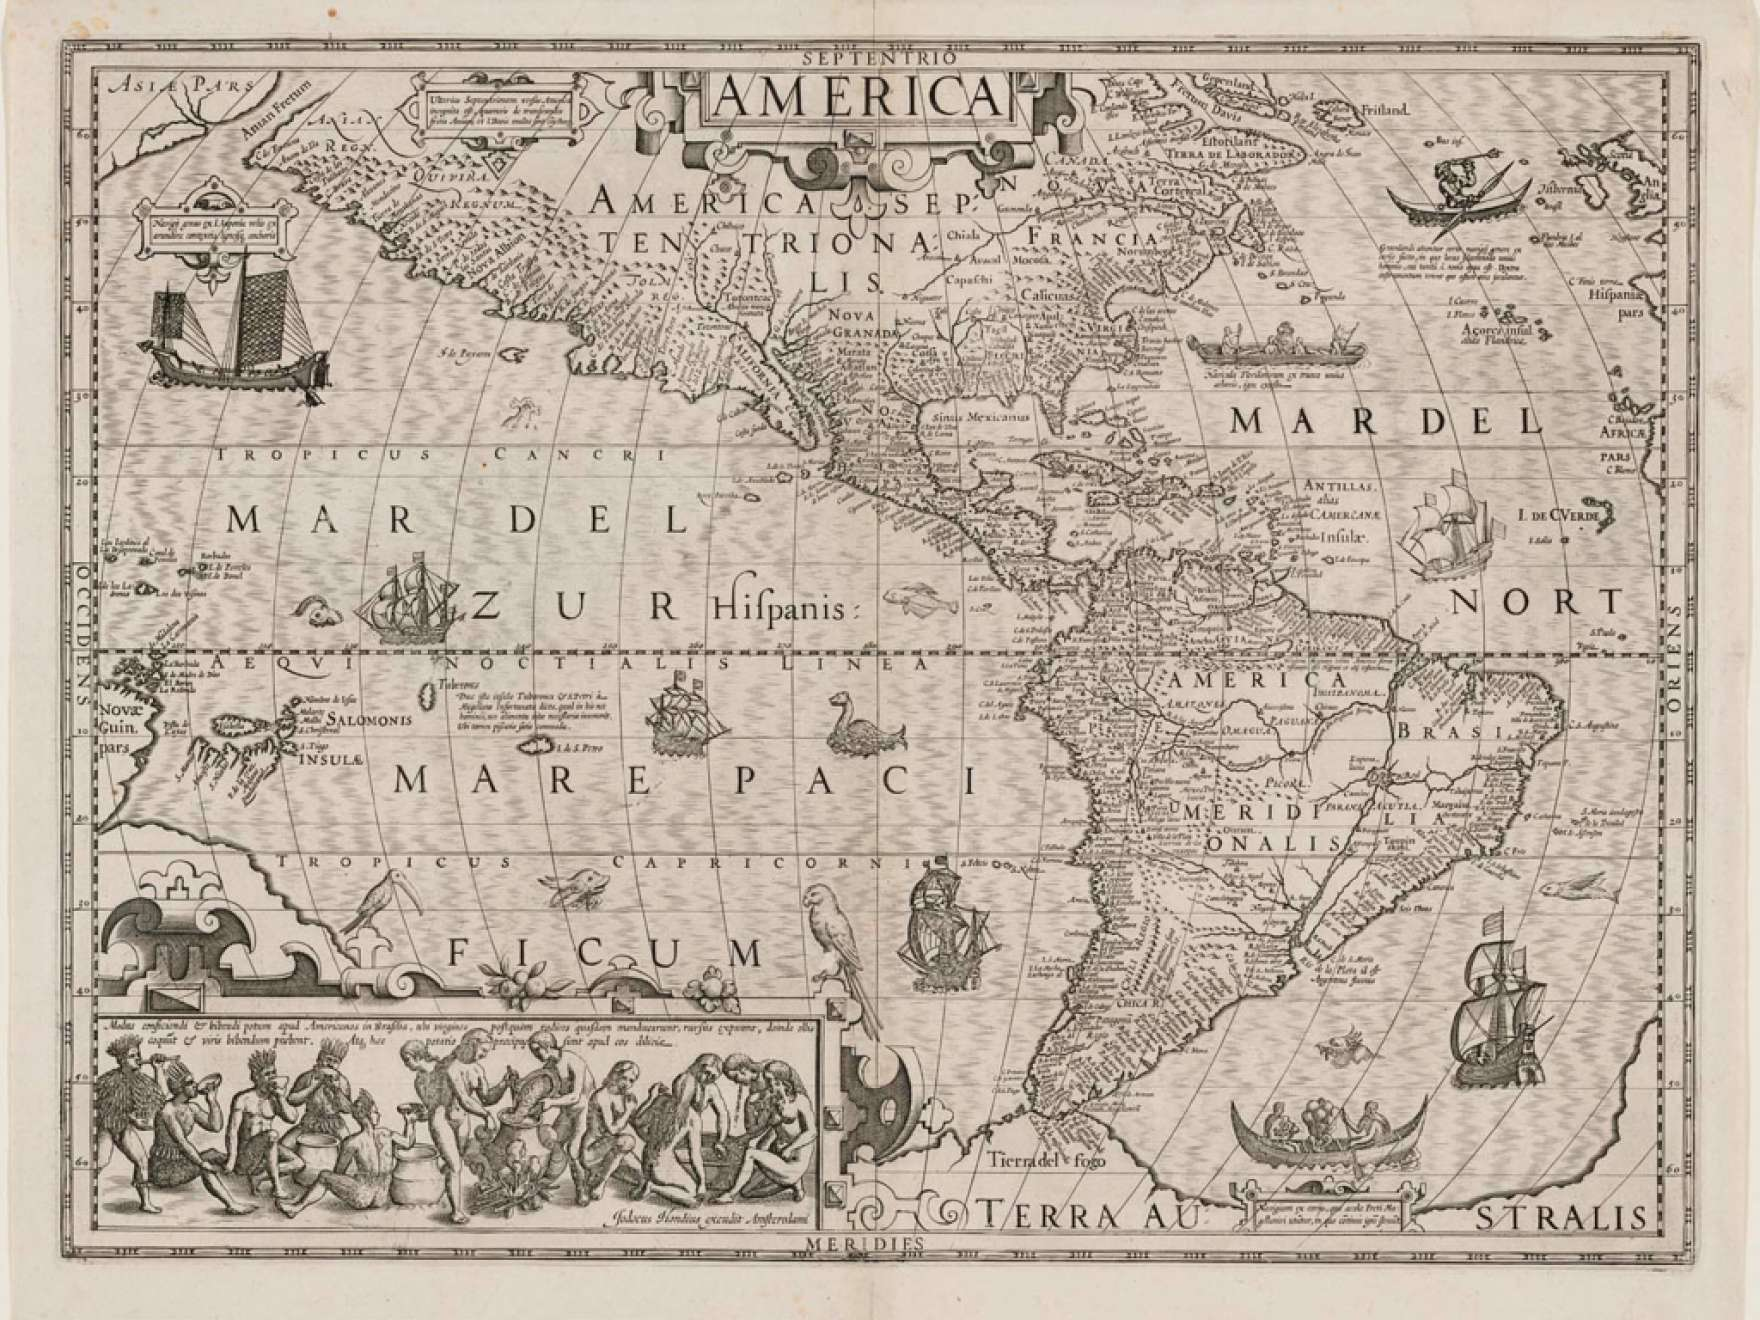 Jost (Jodocus) Hondius's engraving of Map of North and South America, late 16th–early 17th century